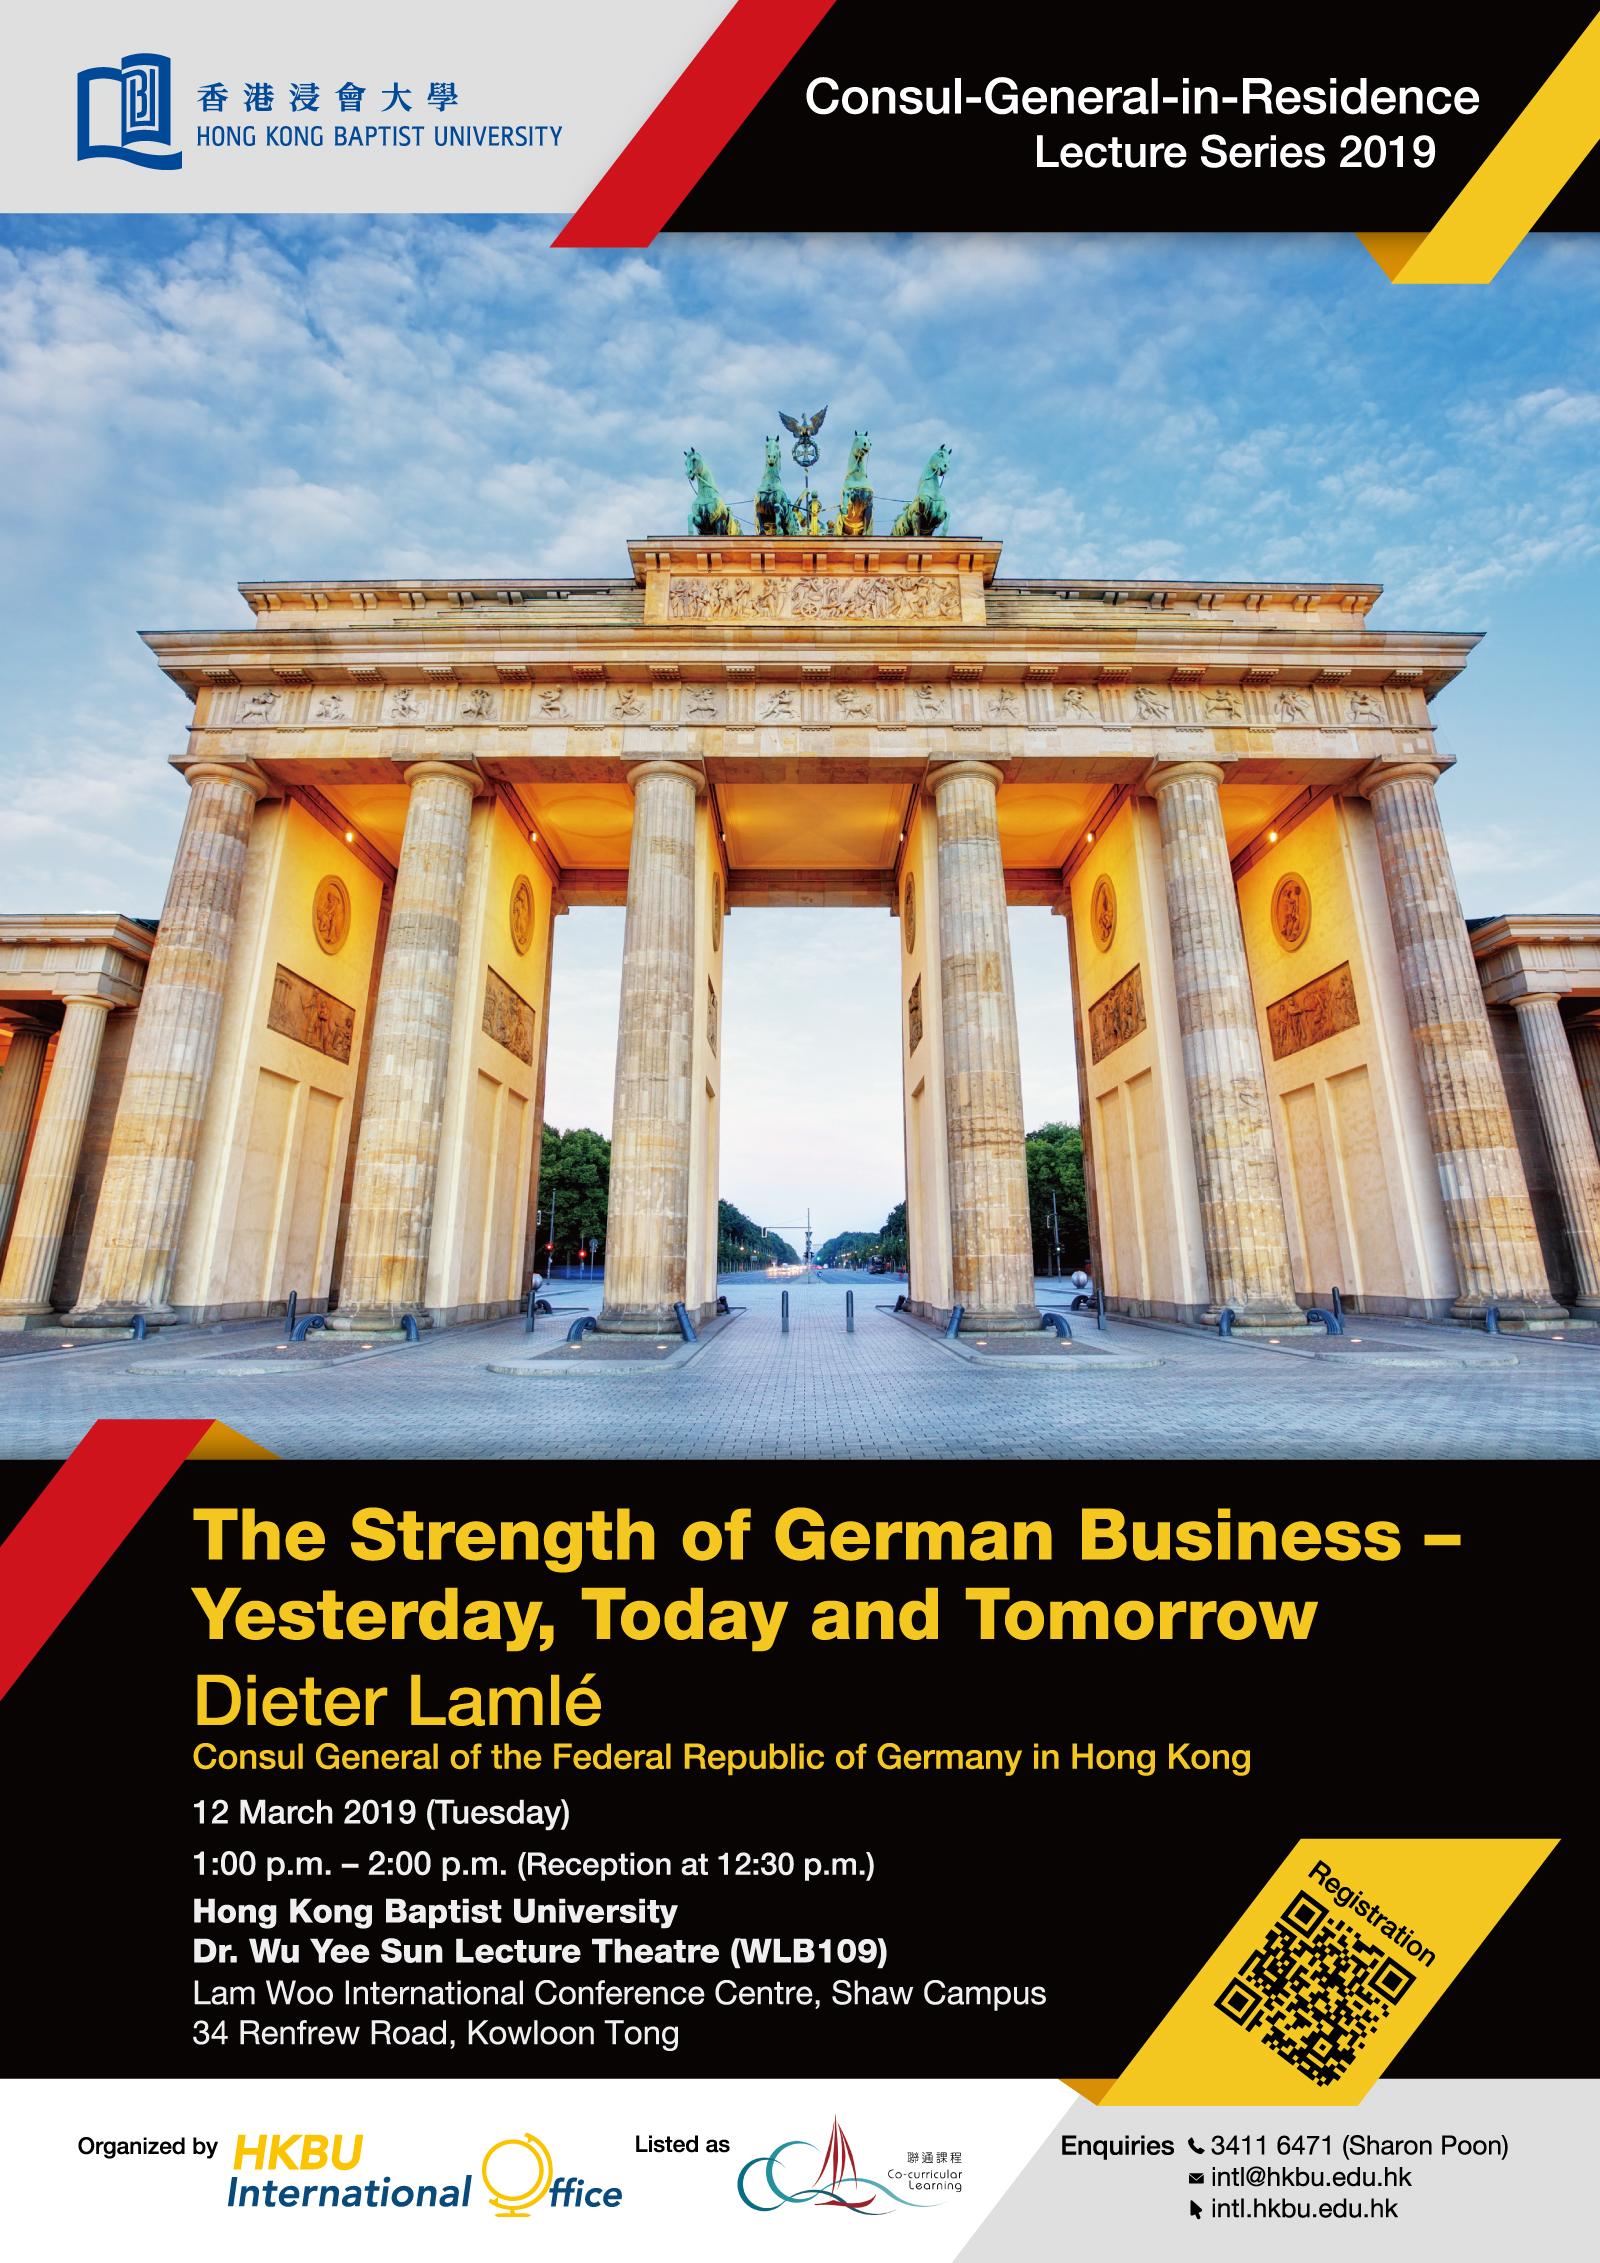 The Strength of German Business - Yesterday, Today and Tomorrow